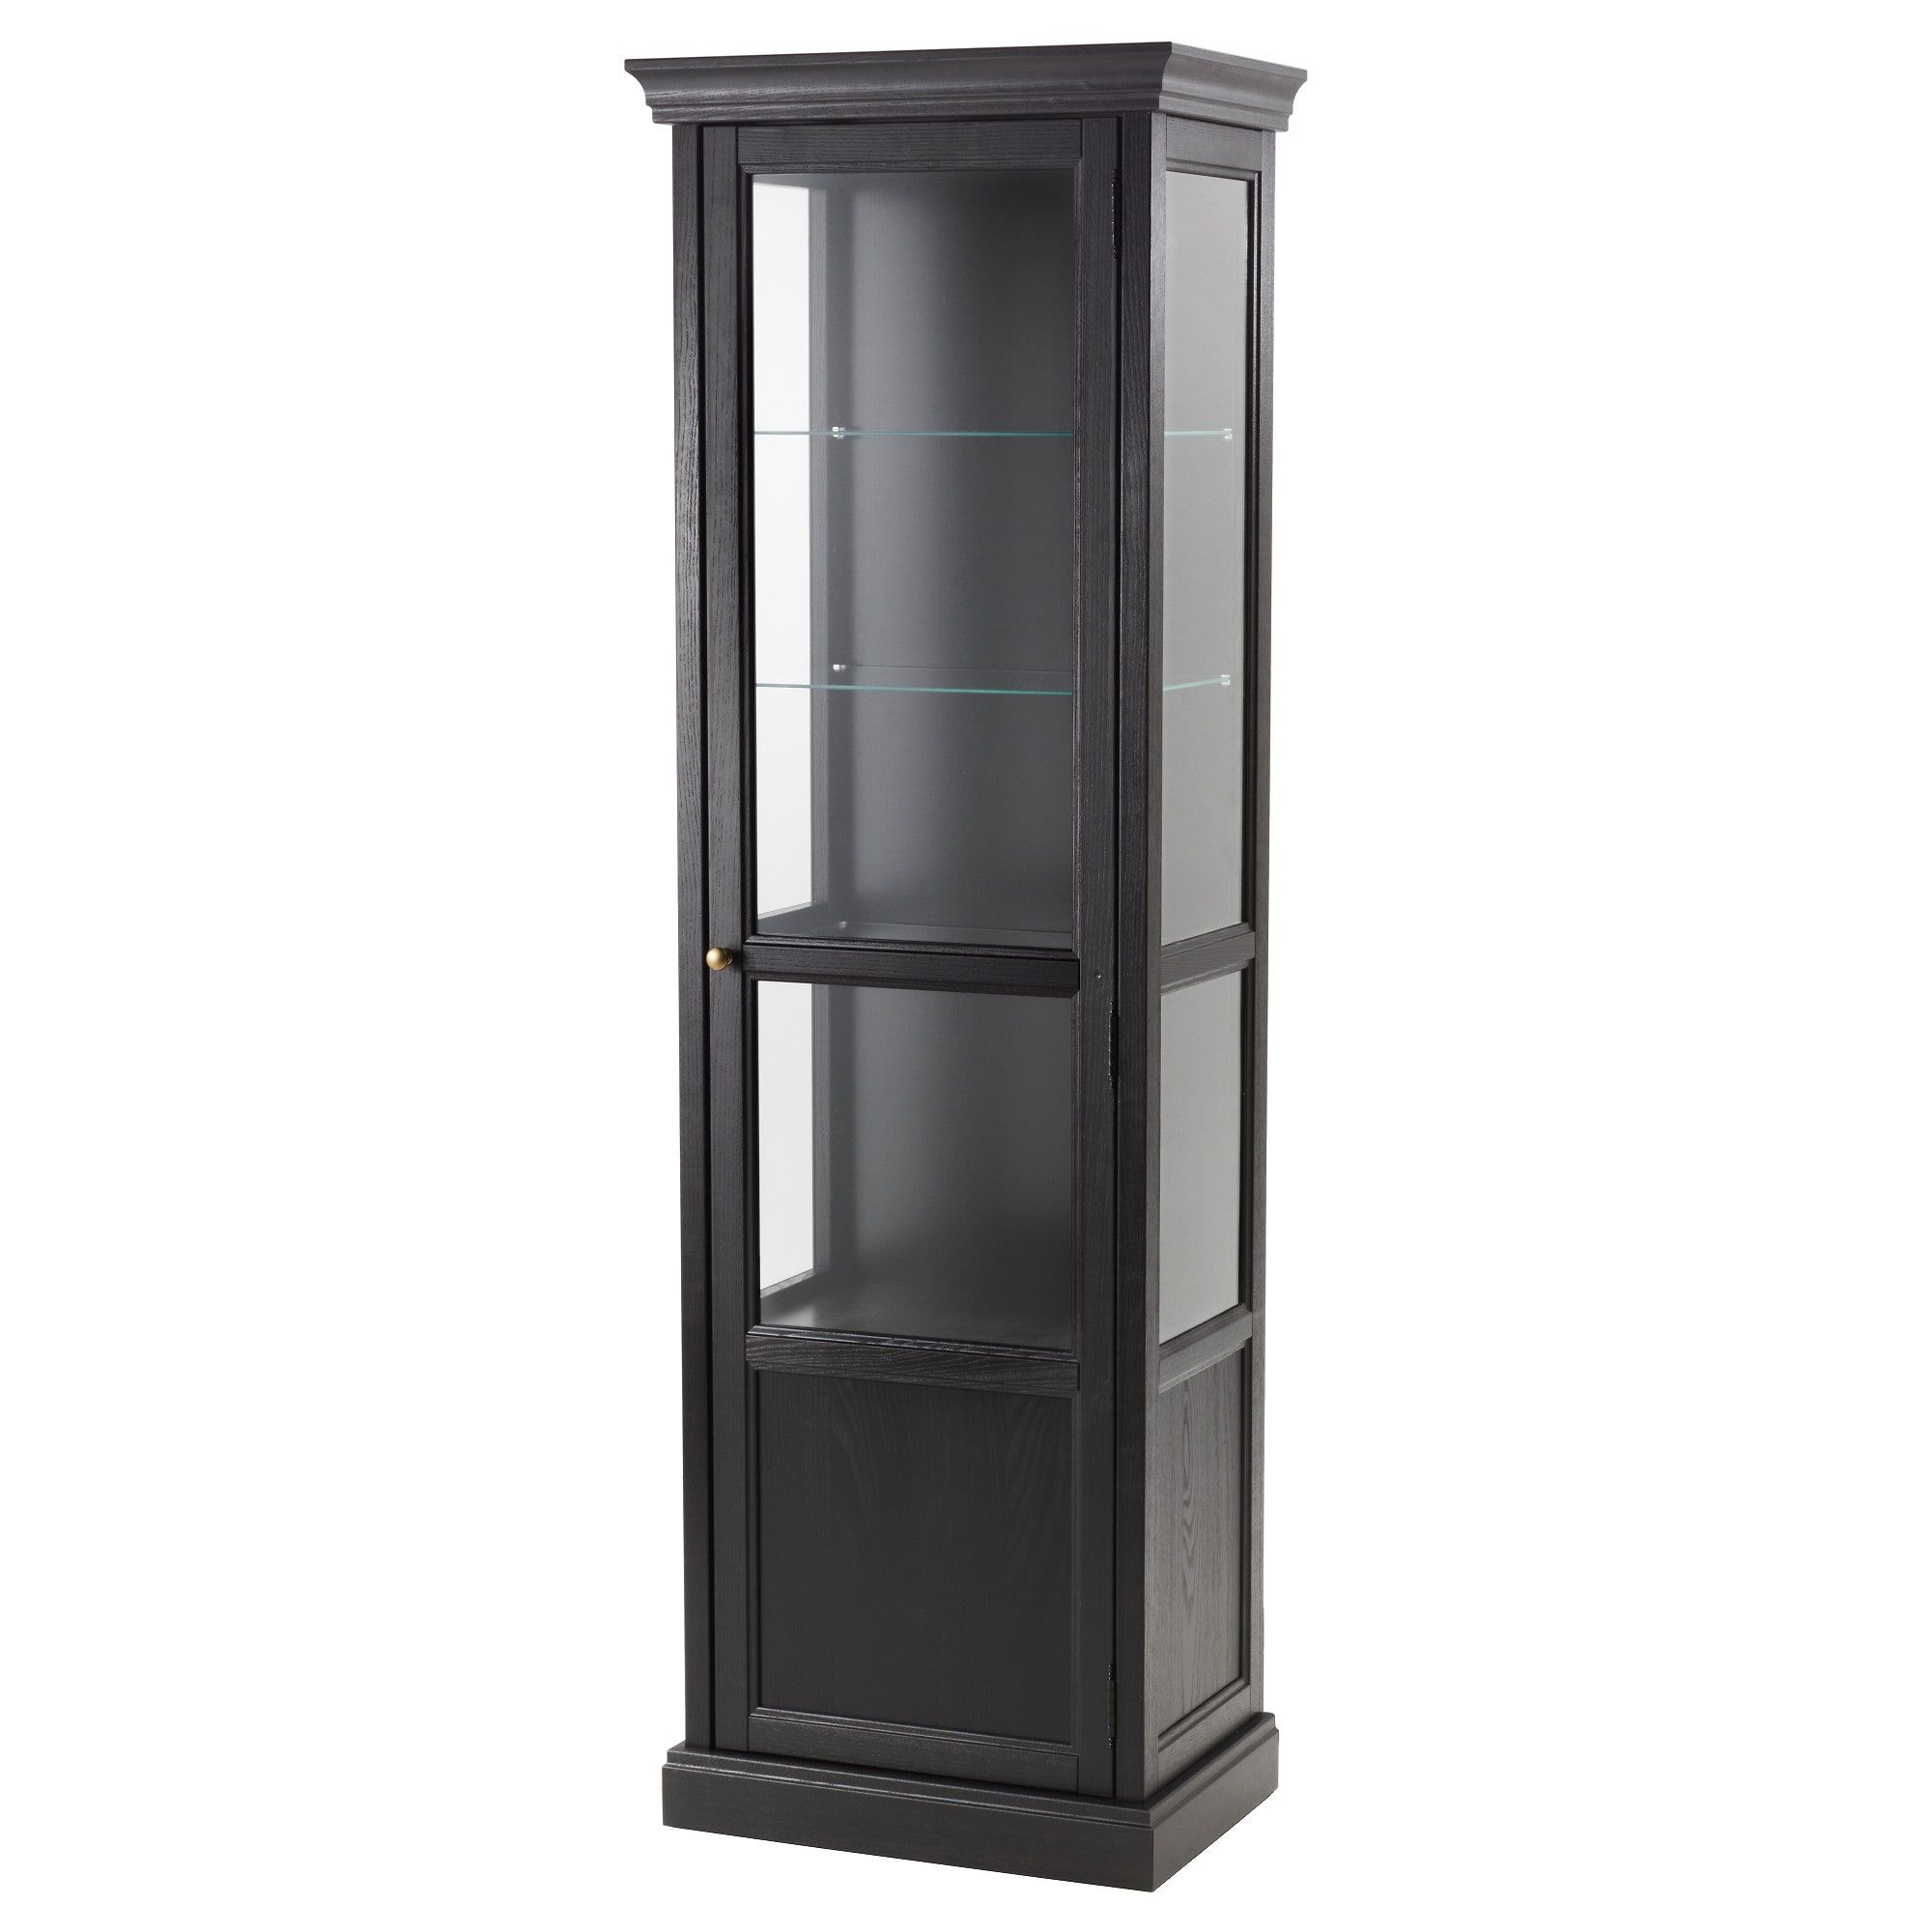 Malsjo Glass Door Cabinet Black Stained Black Stained 23 5 8x15 3 4x73 1 4 Ikea Glass Cabinet Doors Stained Glass Door Glass Shelves